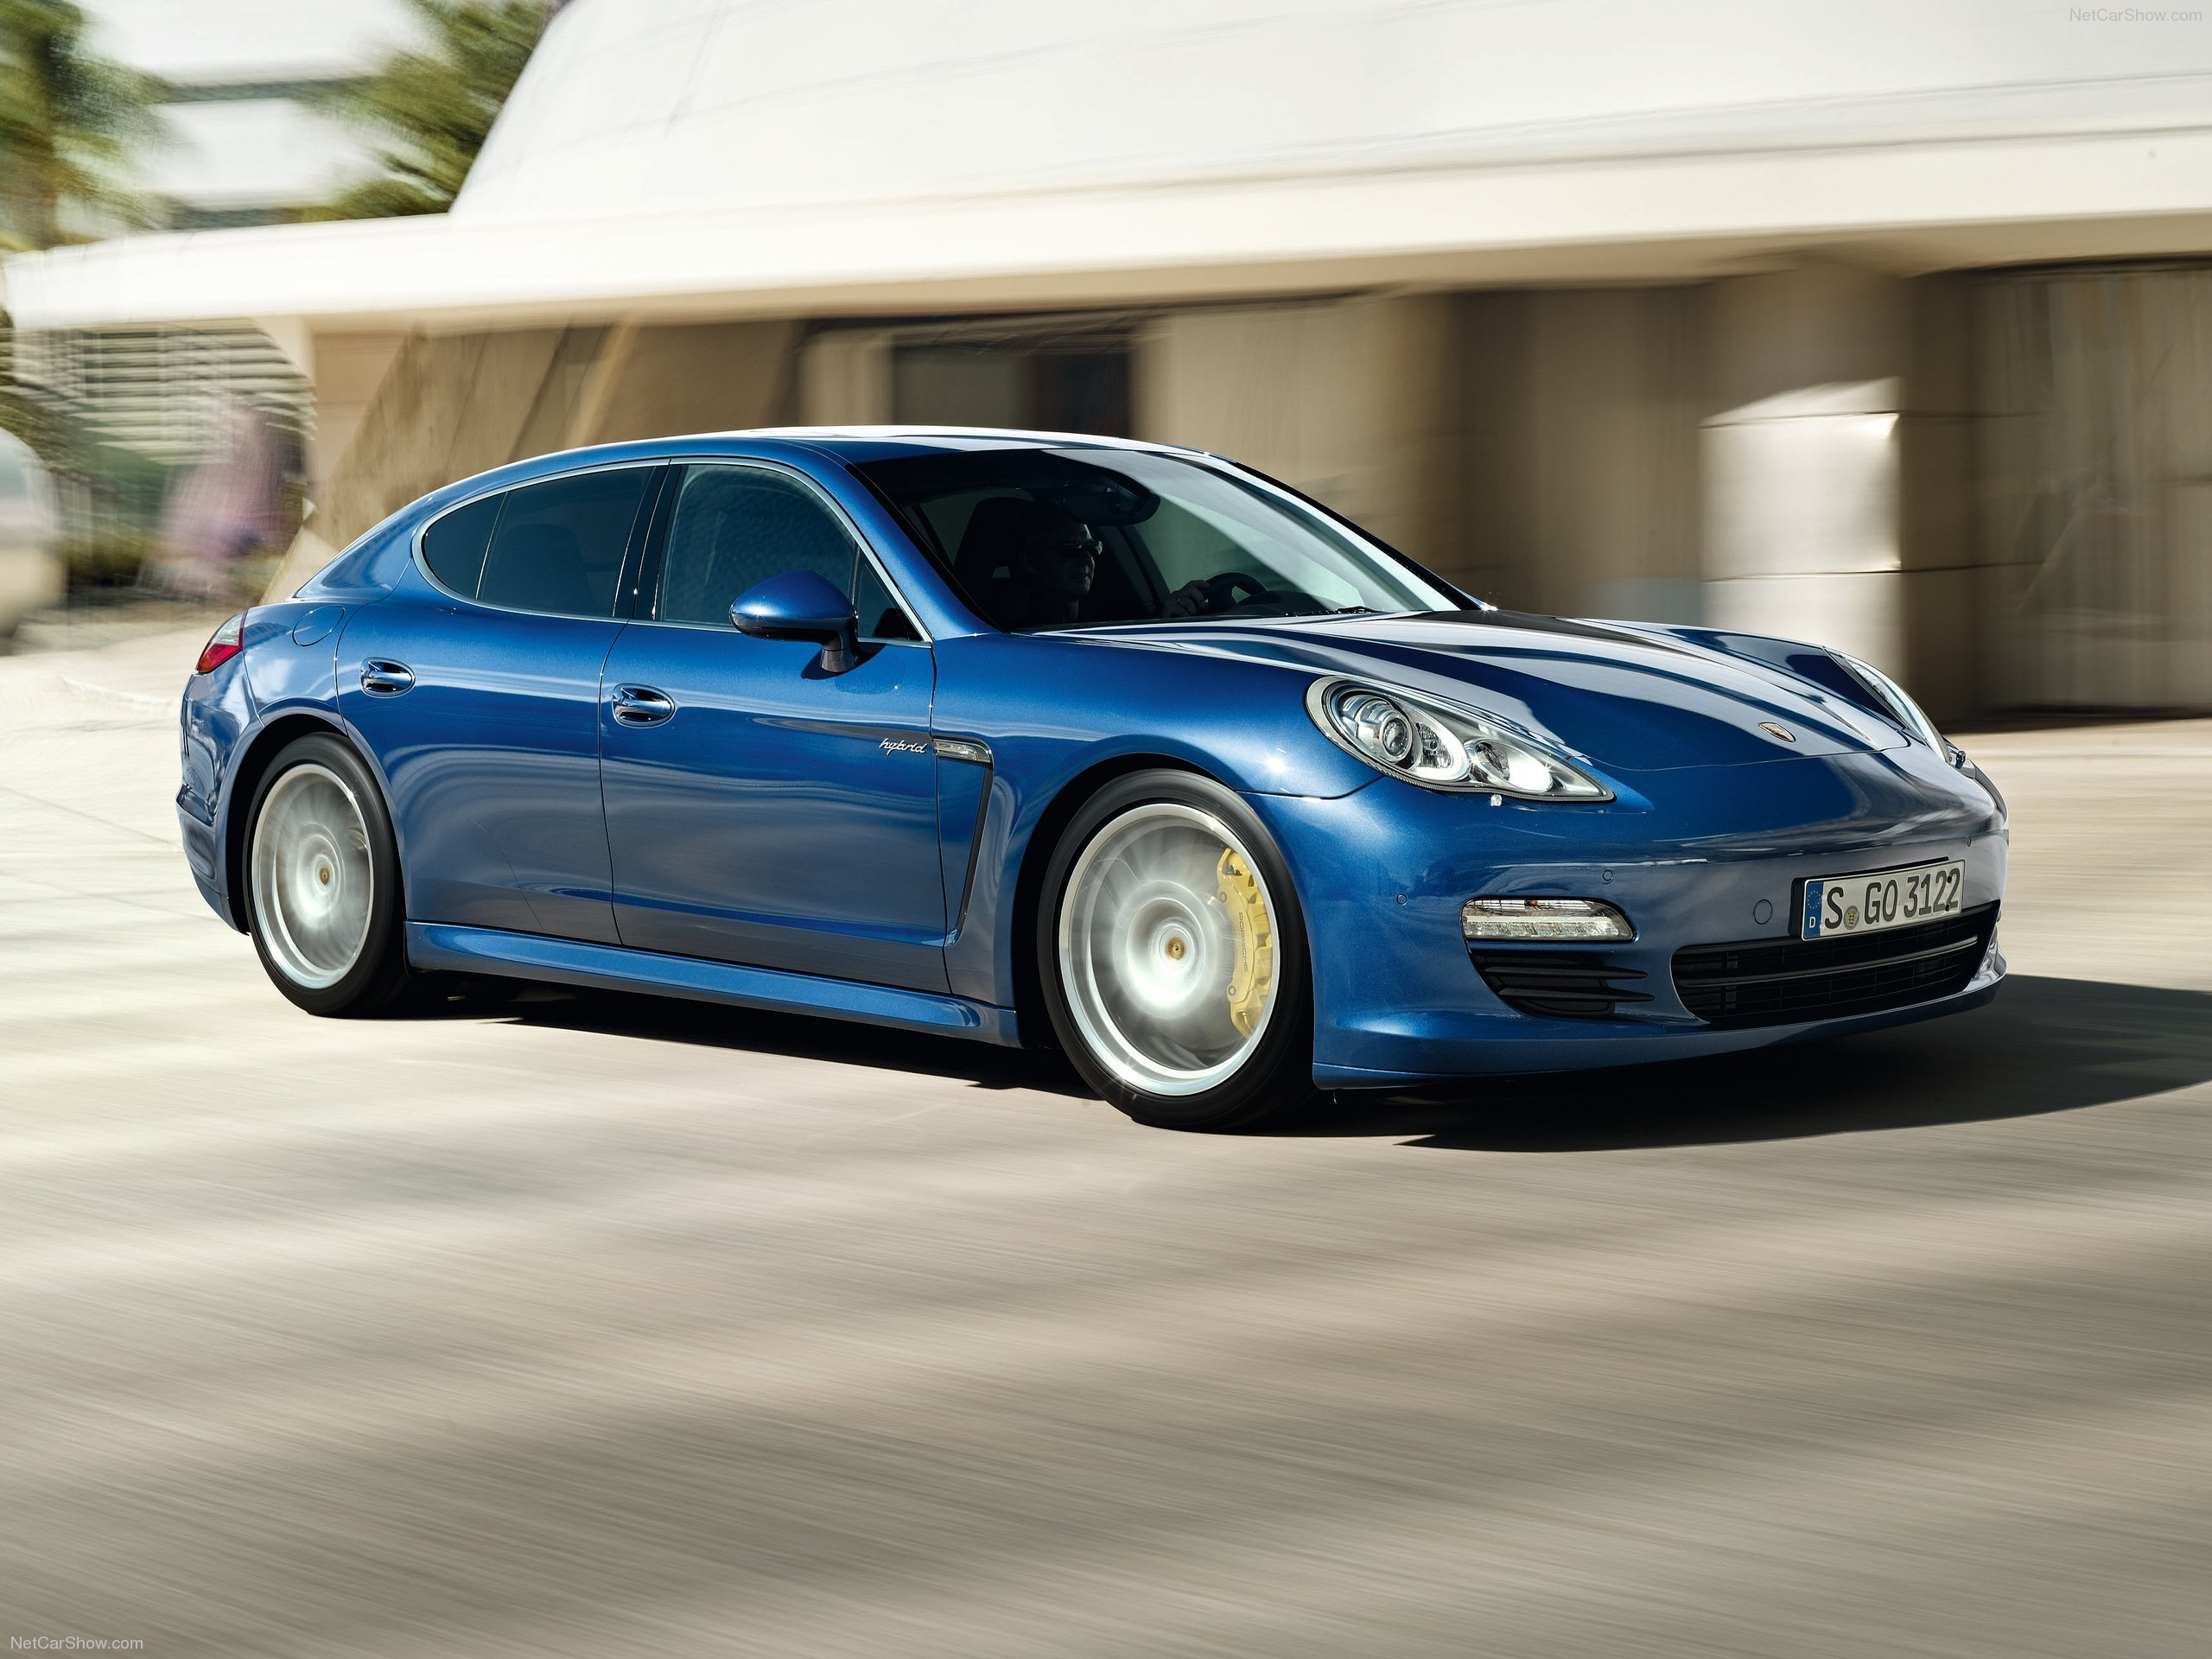 Porsche Panamera 39 Cool Hd Wallpaper Wallpaper 2560x1920